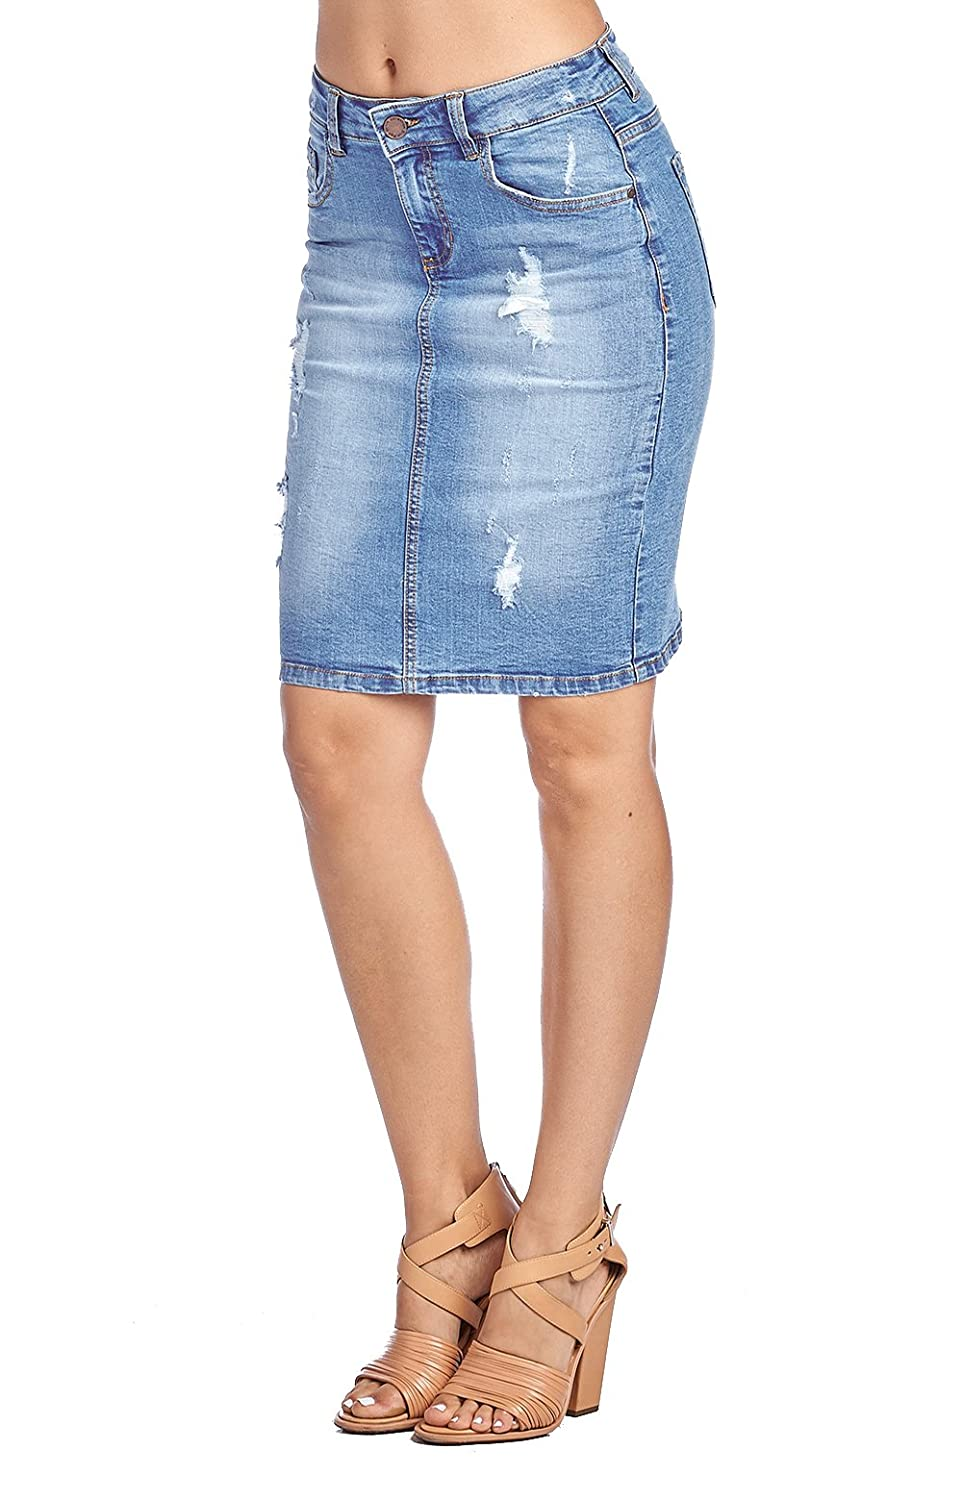 1a262717c23 Zipper Fly closure. Distressed Denim Jean Skirt - Features Distressed Denim  details